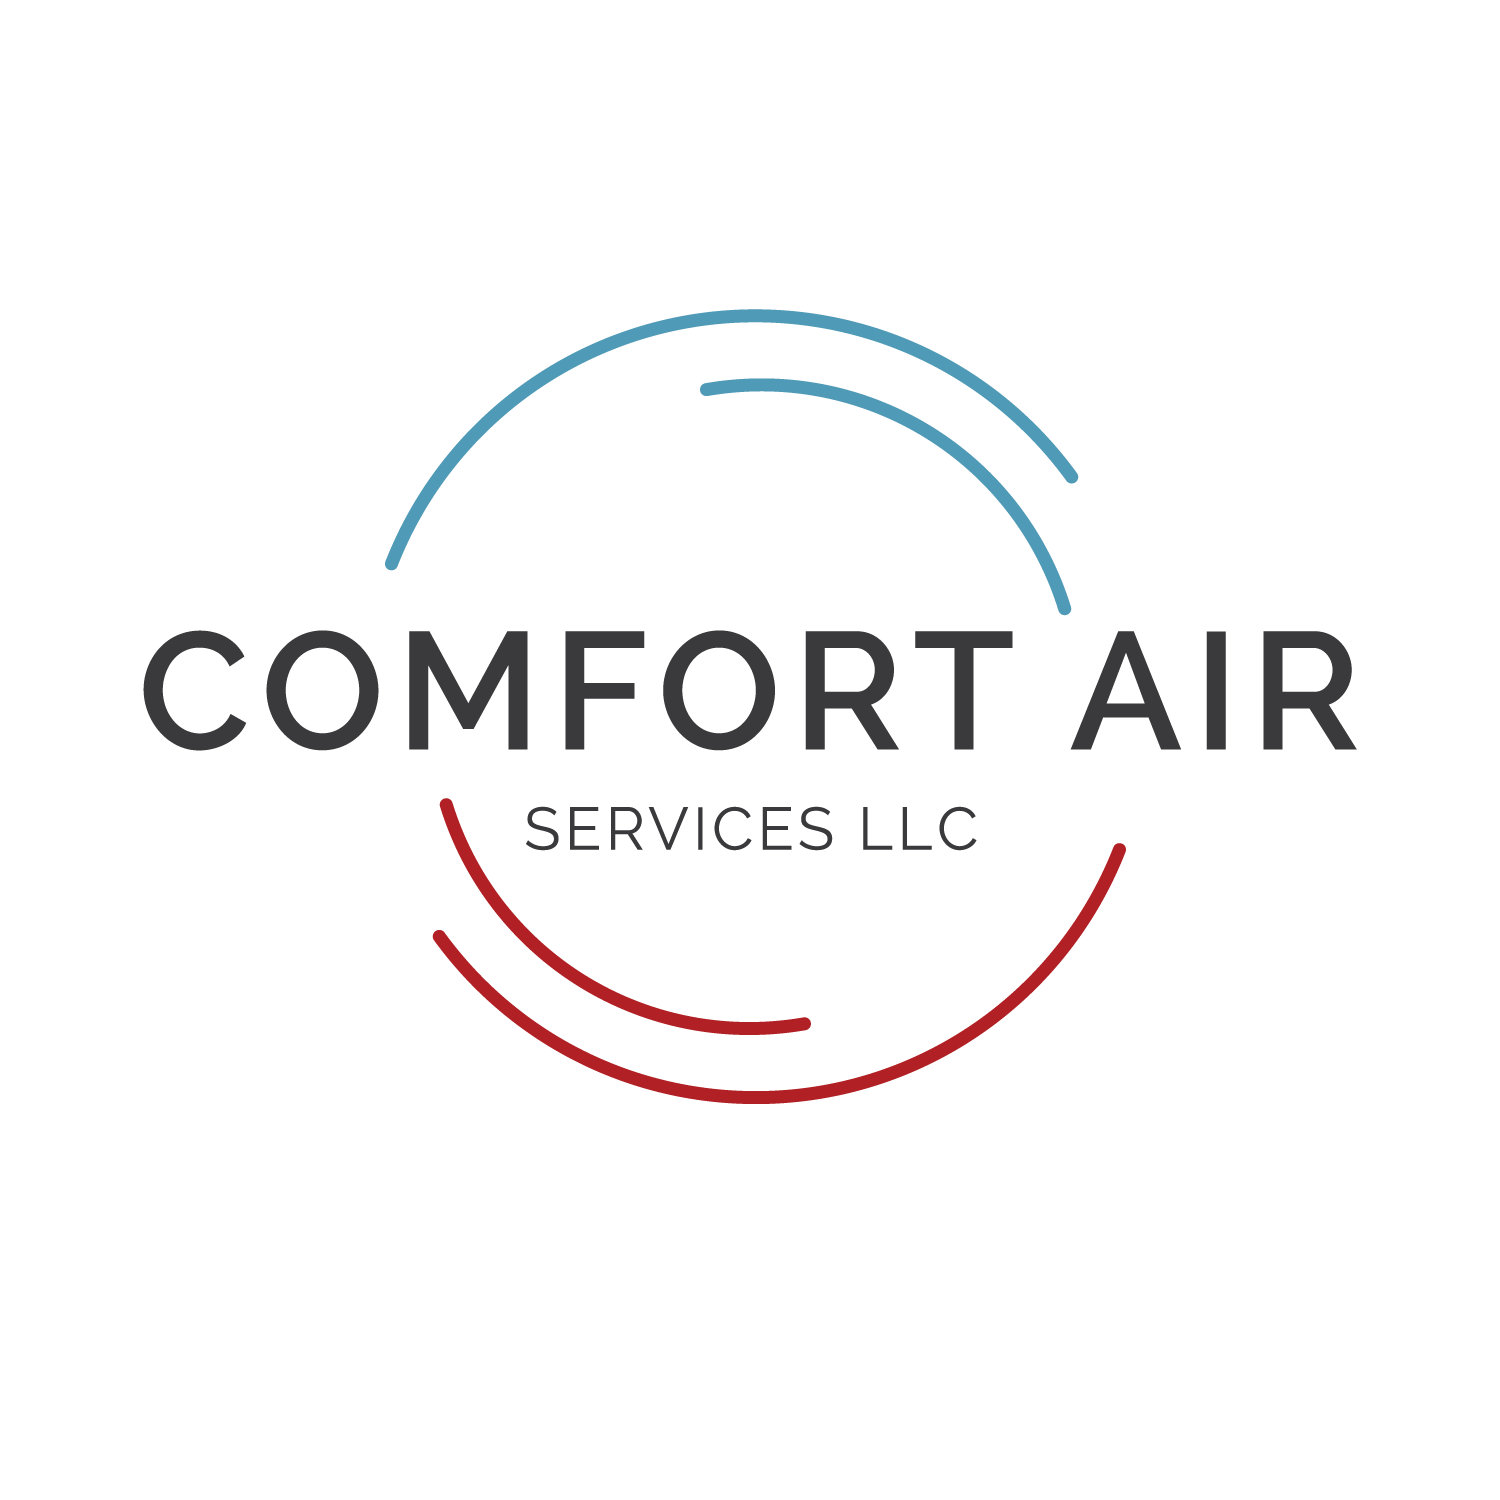 ComfortAirLogo_Color-01.png